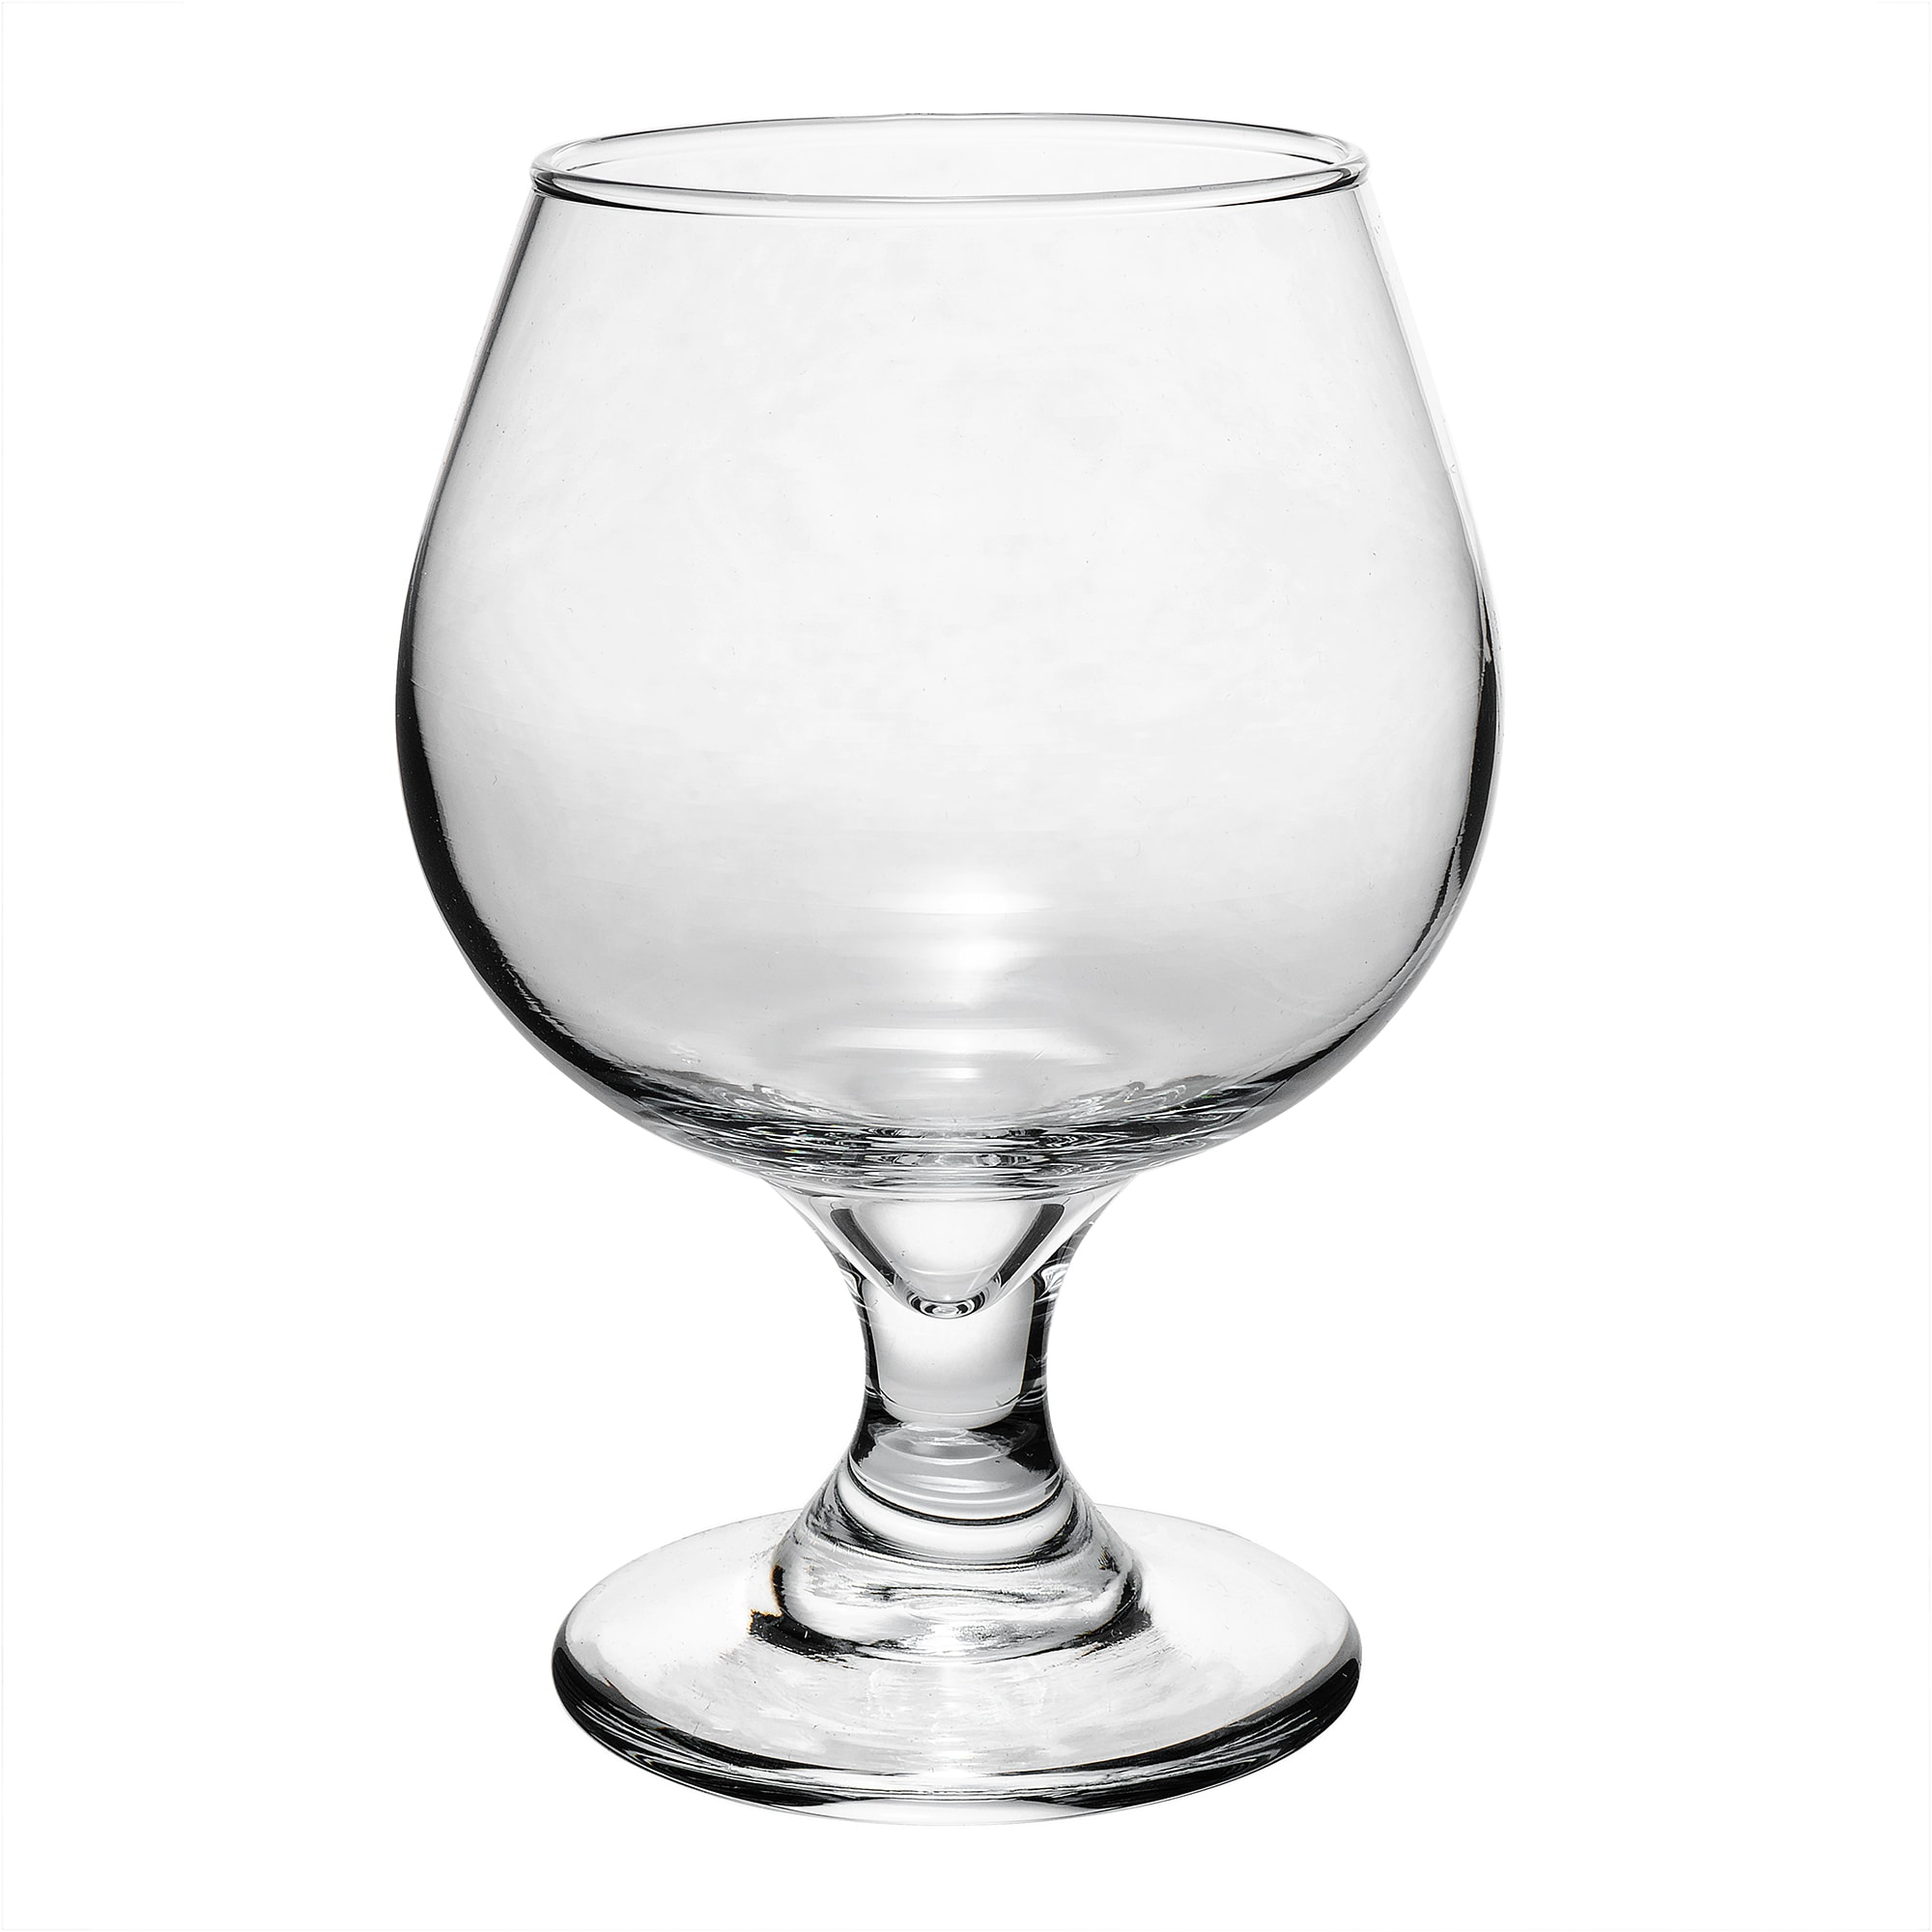 Libbey 3705 11.5 oz Embassy Brandy Glass - Safedge Rim & Foot Guarantee